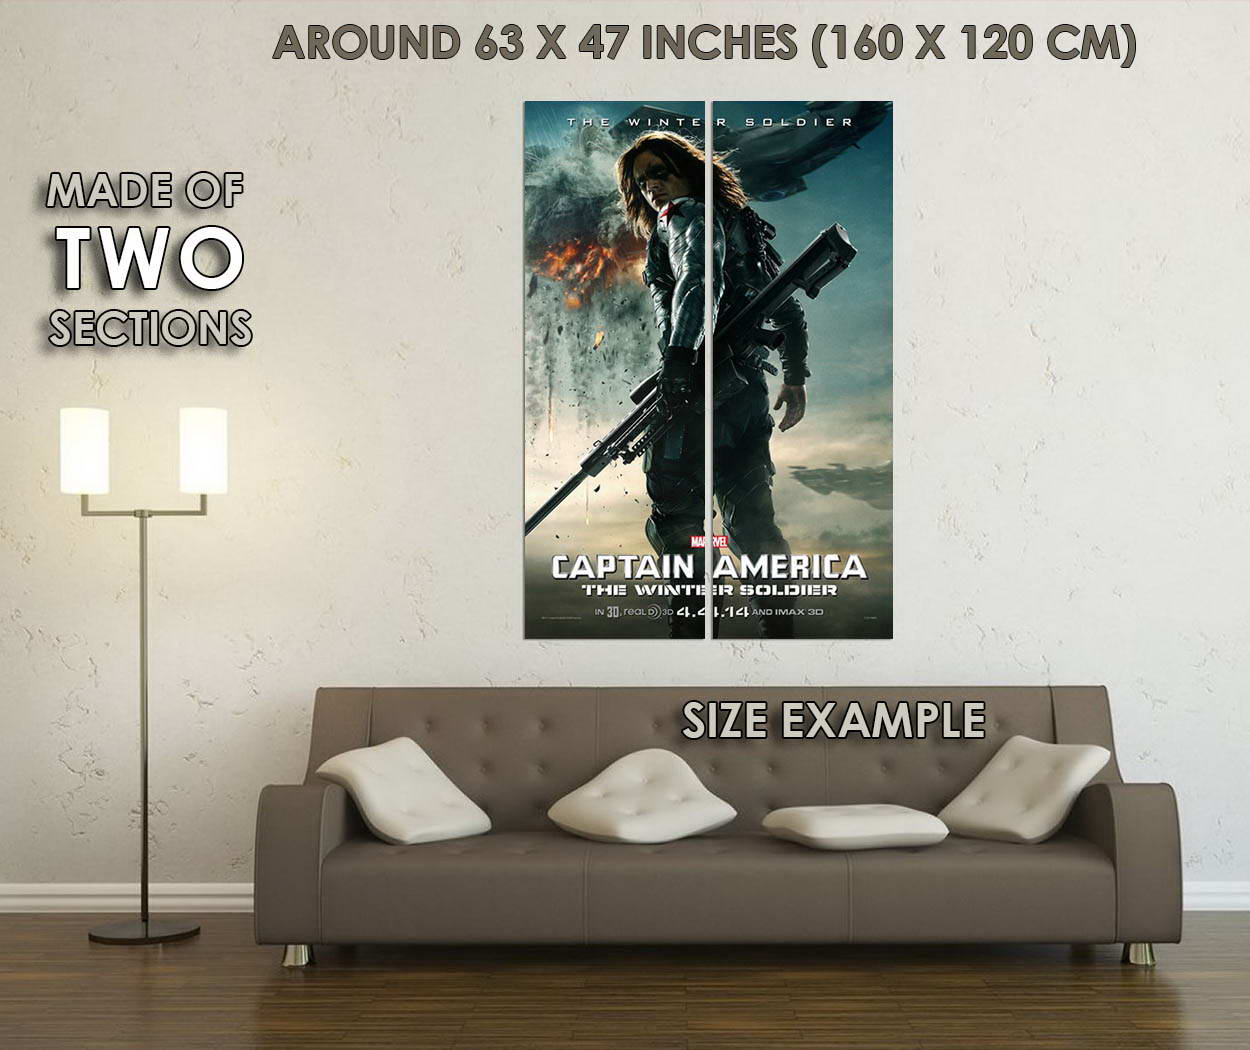 10807-Captain-America-2-The-Winter-Solider-LAMINATED-POSTER-CA thumbnail 6